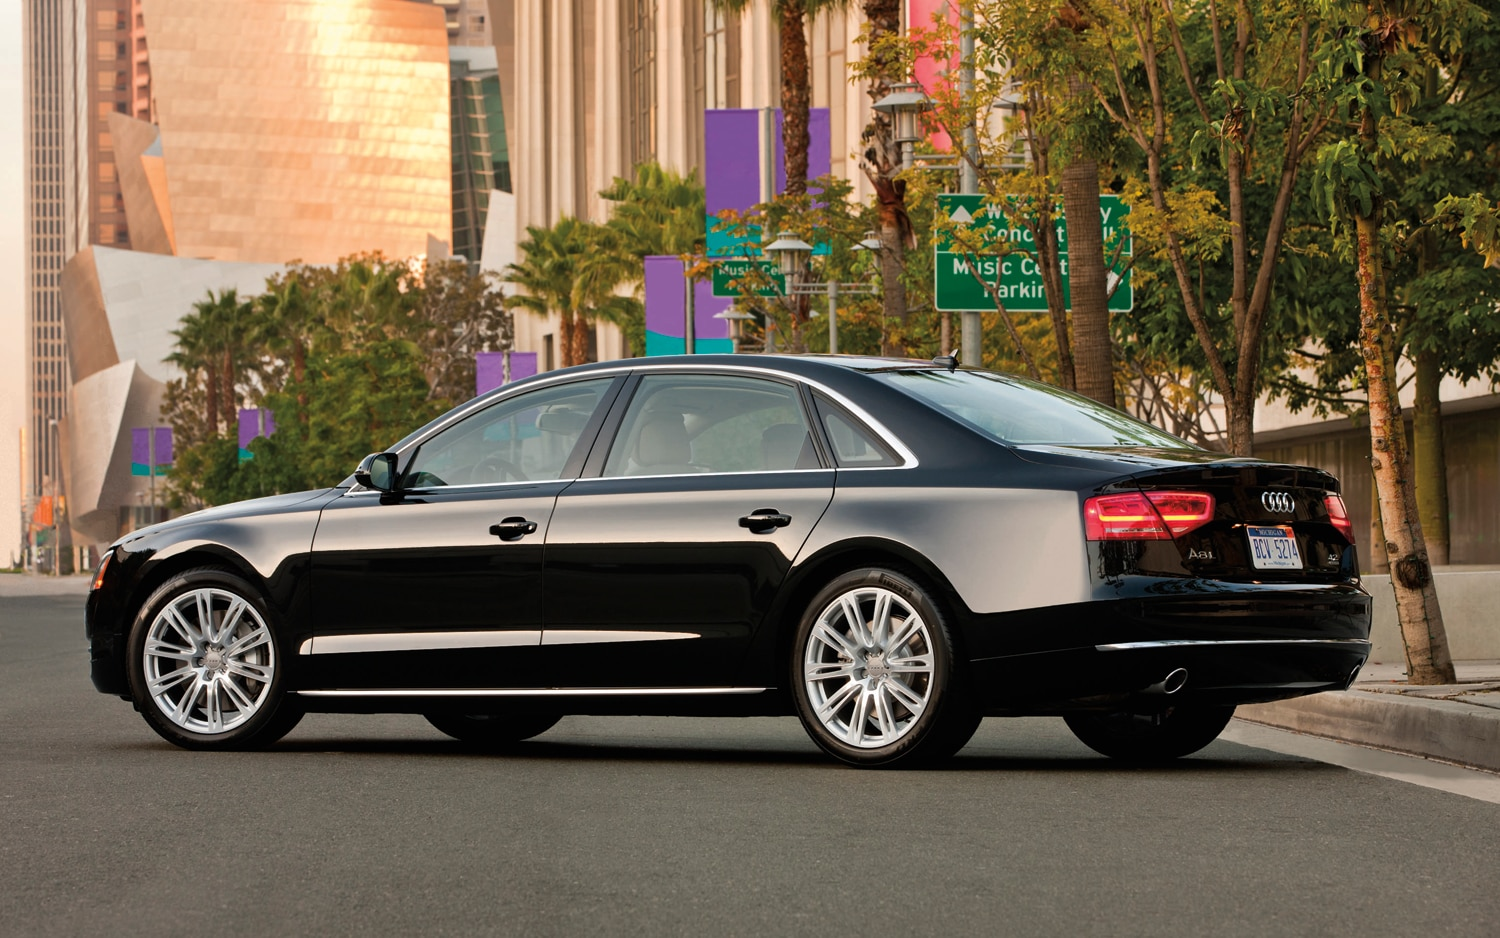 2012 Audi A8 Rear Side View1